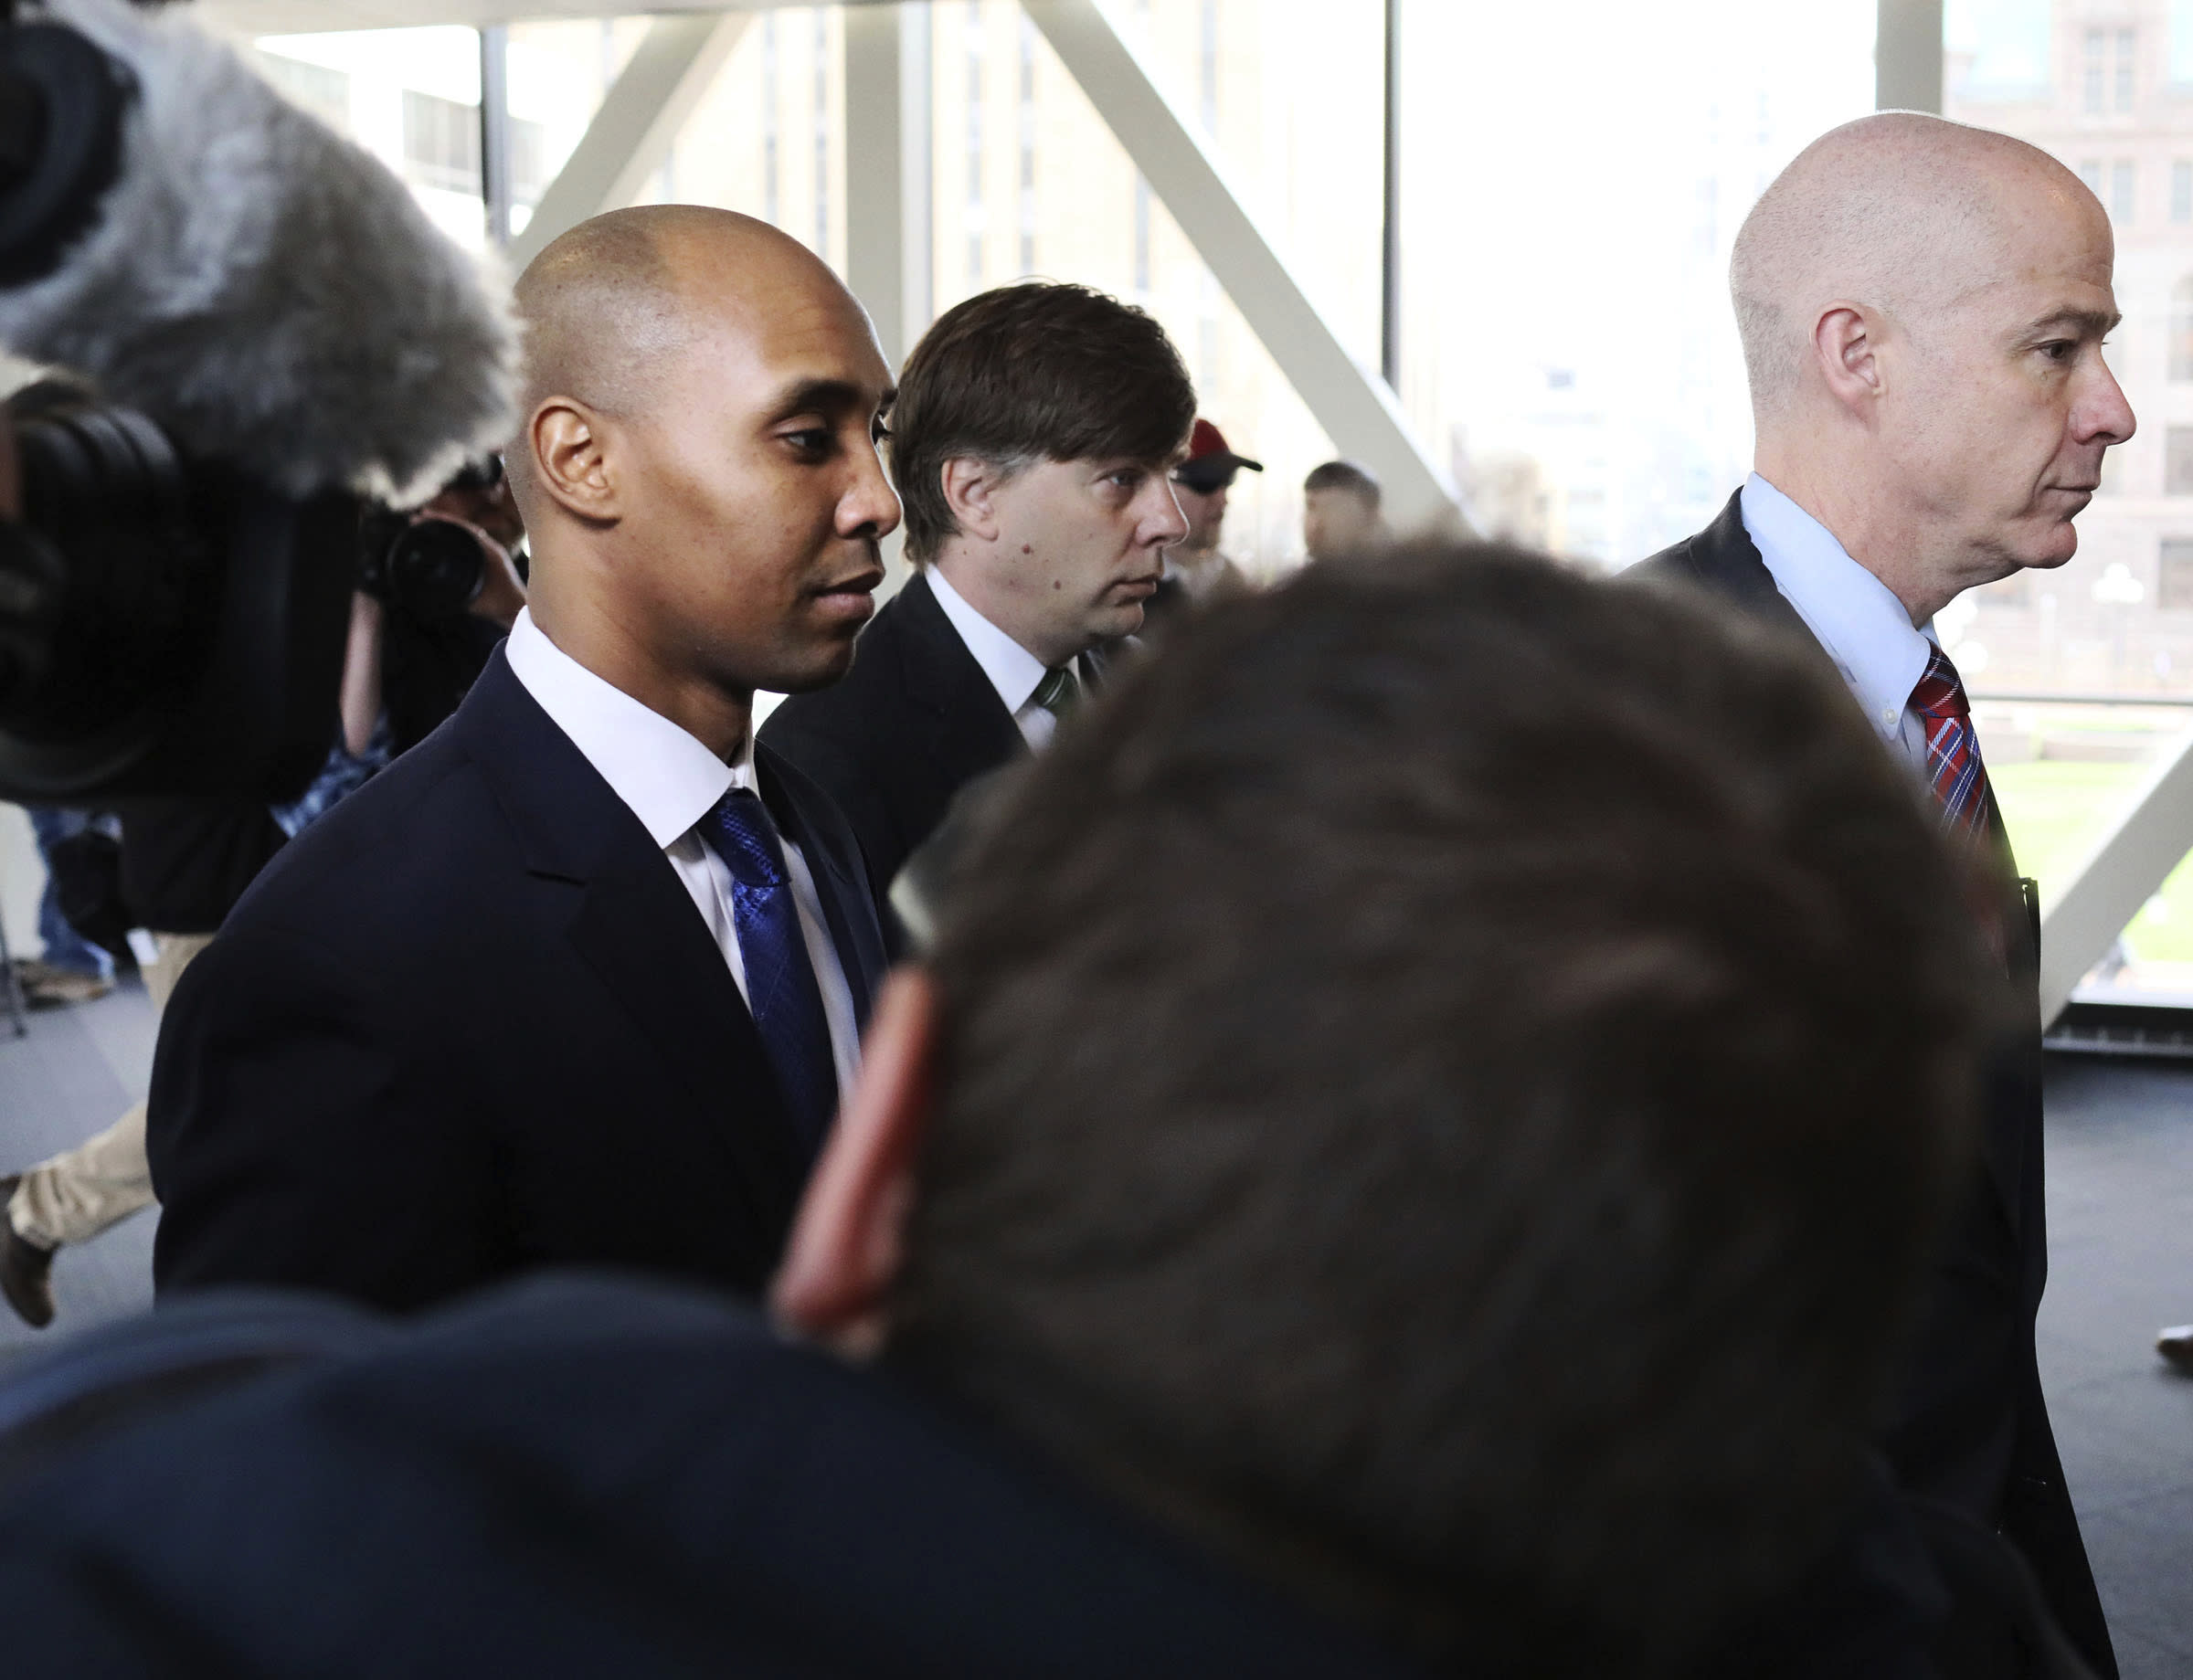 Former Minneapolis police officer Mohamed Noor, center, is accompanied by his attorneys Peter Wold, not pictured, and Thomas Plunkett, right, as he walks towards the Hennepin County Government Center for opening arguments of his trial Tuesday, April 9, 2019, in Minneapolis, Minn. Opening arguments scheduled to begin in the trial of former Minneapolis police officer Mohamed Noor in the shooting death of Justine Ruszczyk Damond. (David Joles/Star Tribune via AP)